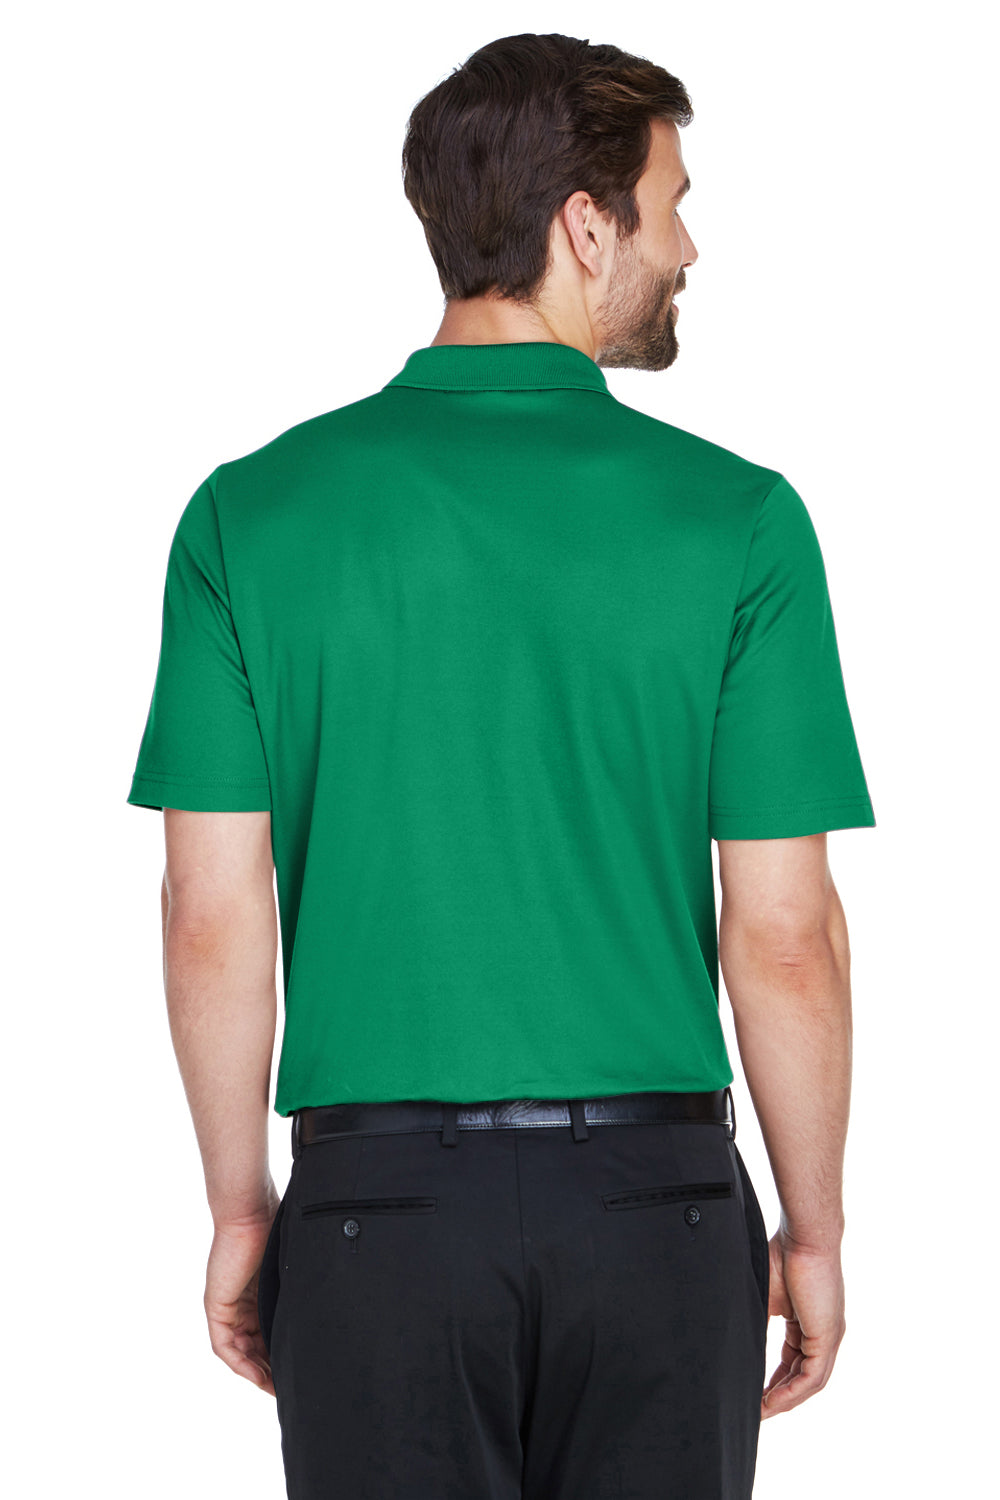 Devon & Jones DG20 CrownLux Performance Moisture Wicking Short Sleeve Polo Shirt Kelly Green Back